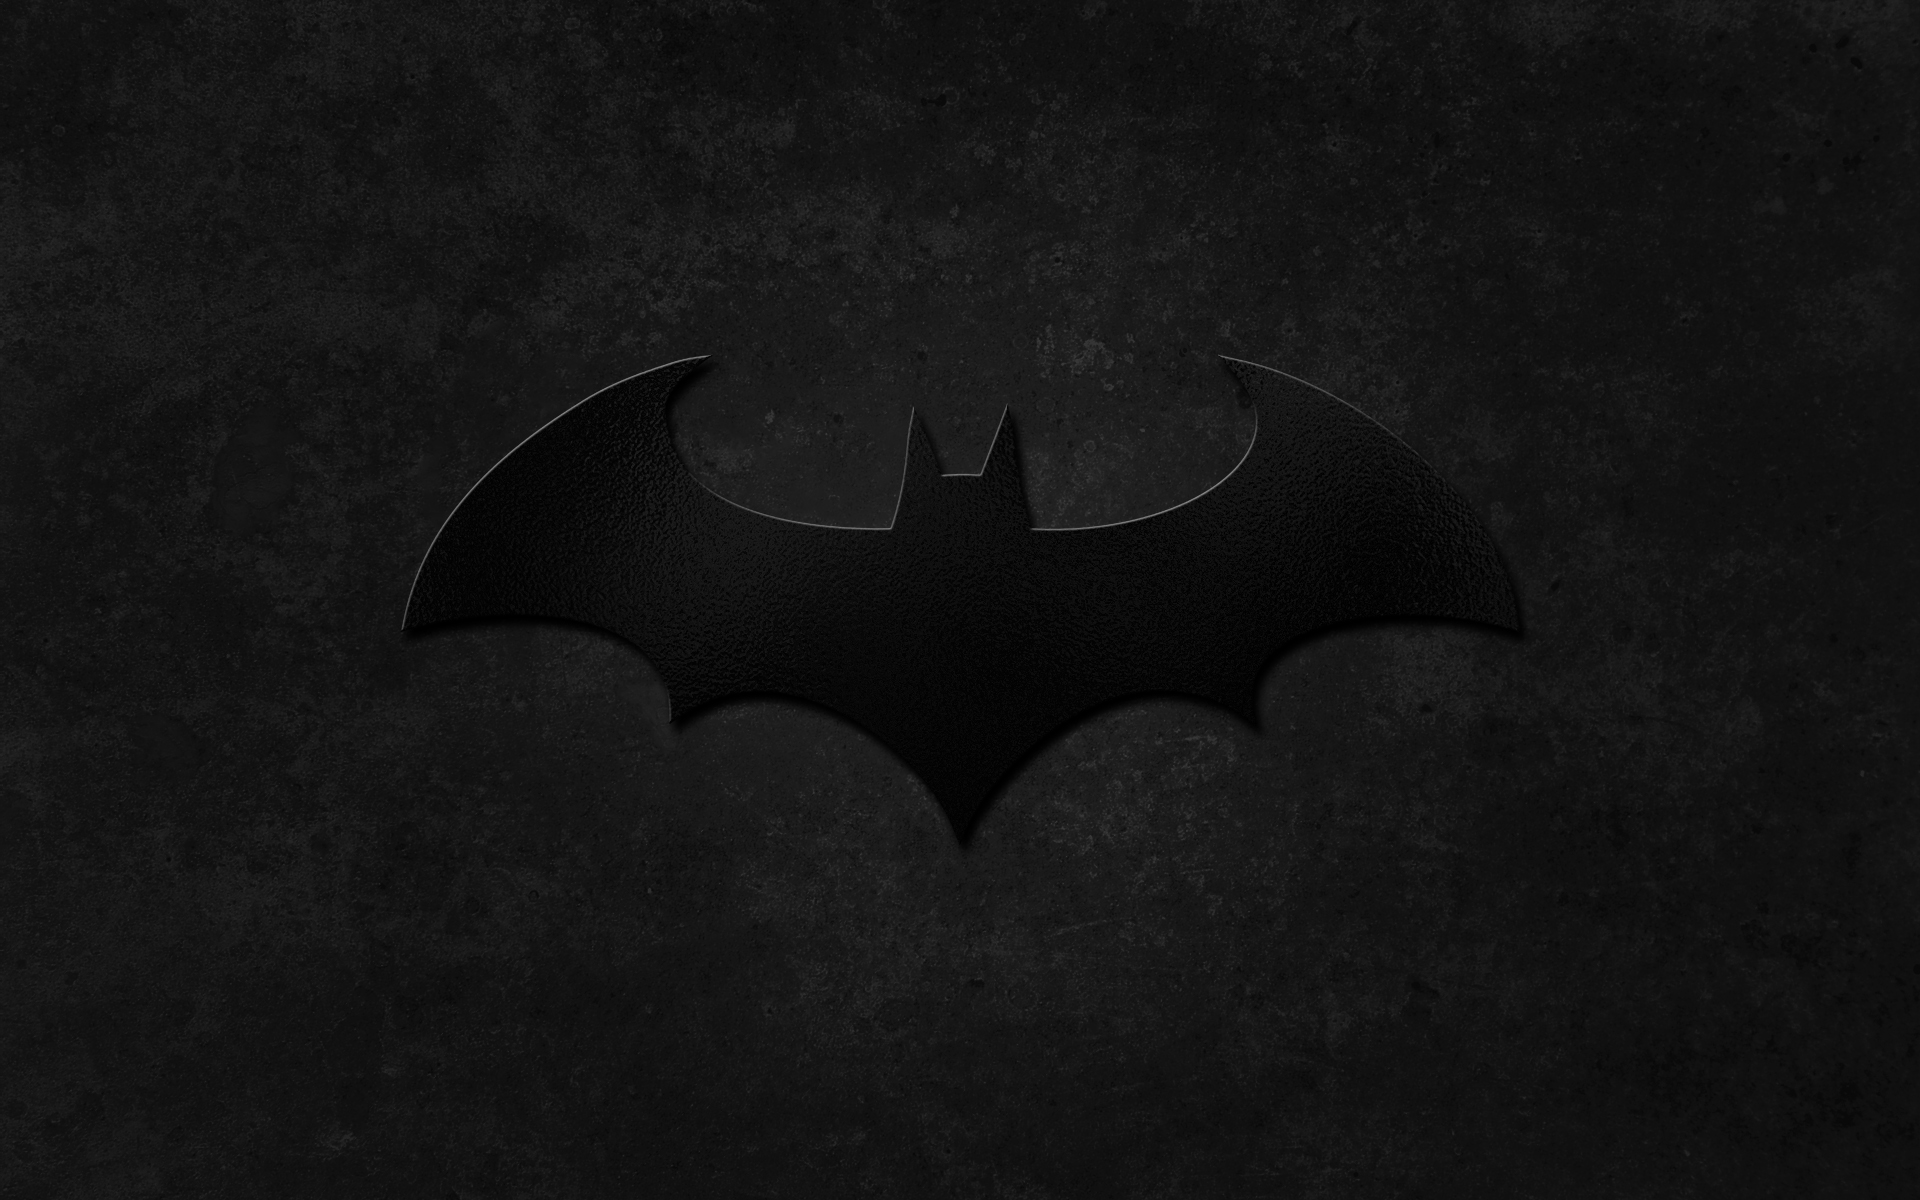 Bat Symbol Wallpaper - WallpaperSafari